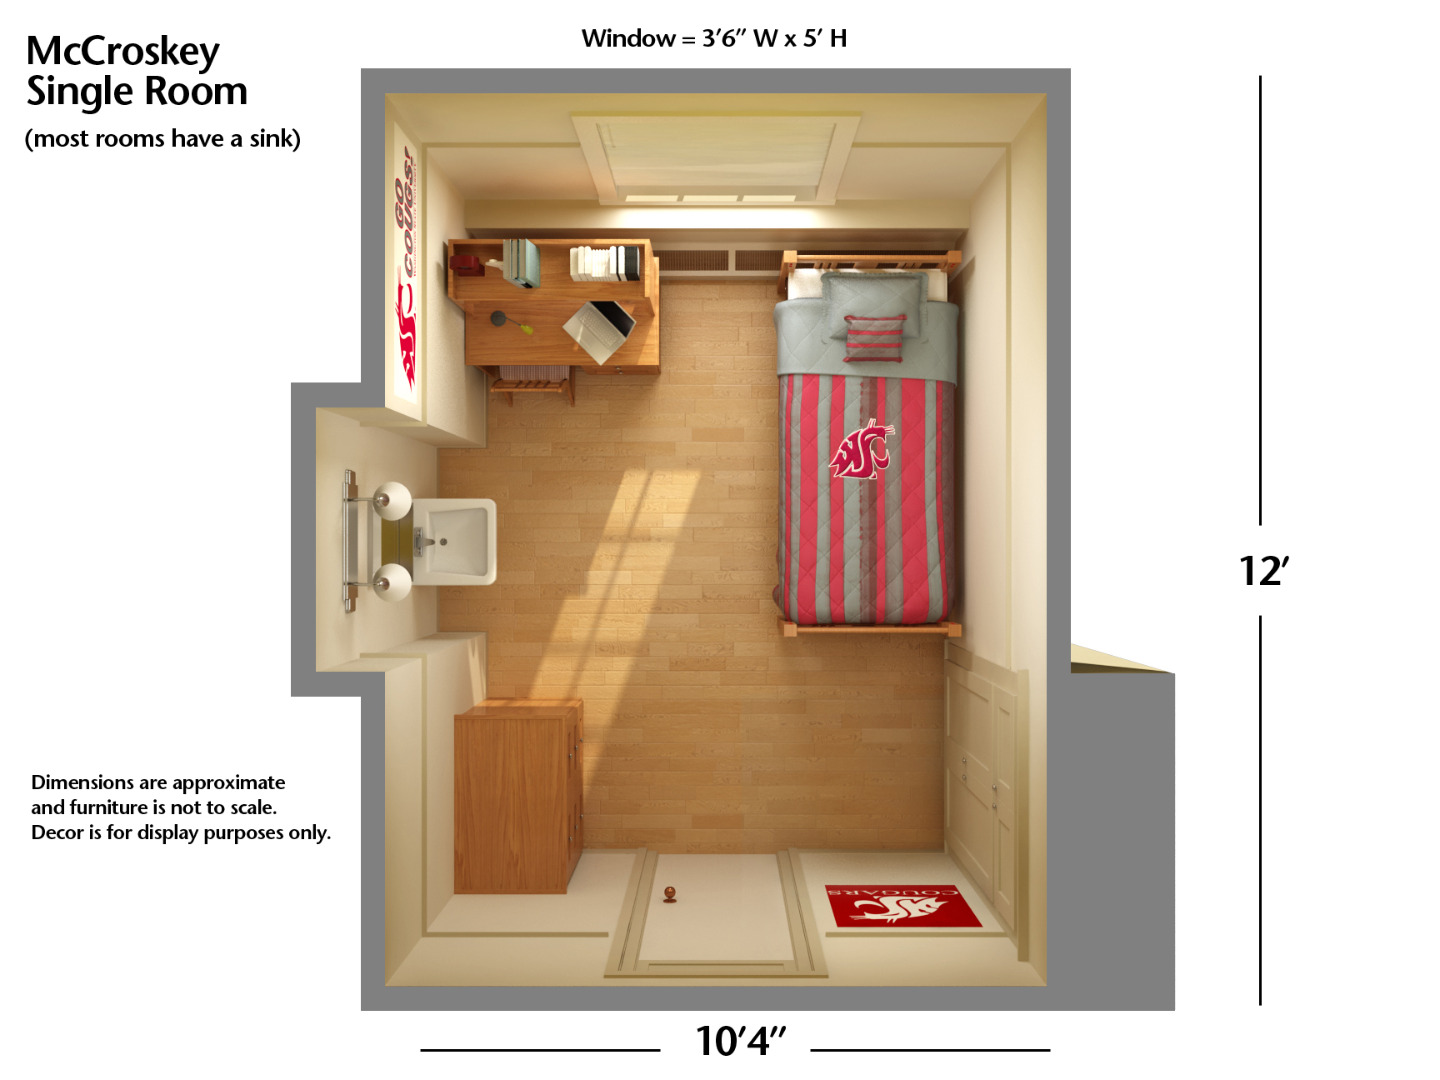 pullman singles Blueprint series bp - 2121 wwwbranchline  single bedrooms these were small rooms with a  3410a was the single most popular pullman floor plan with over 920.